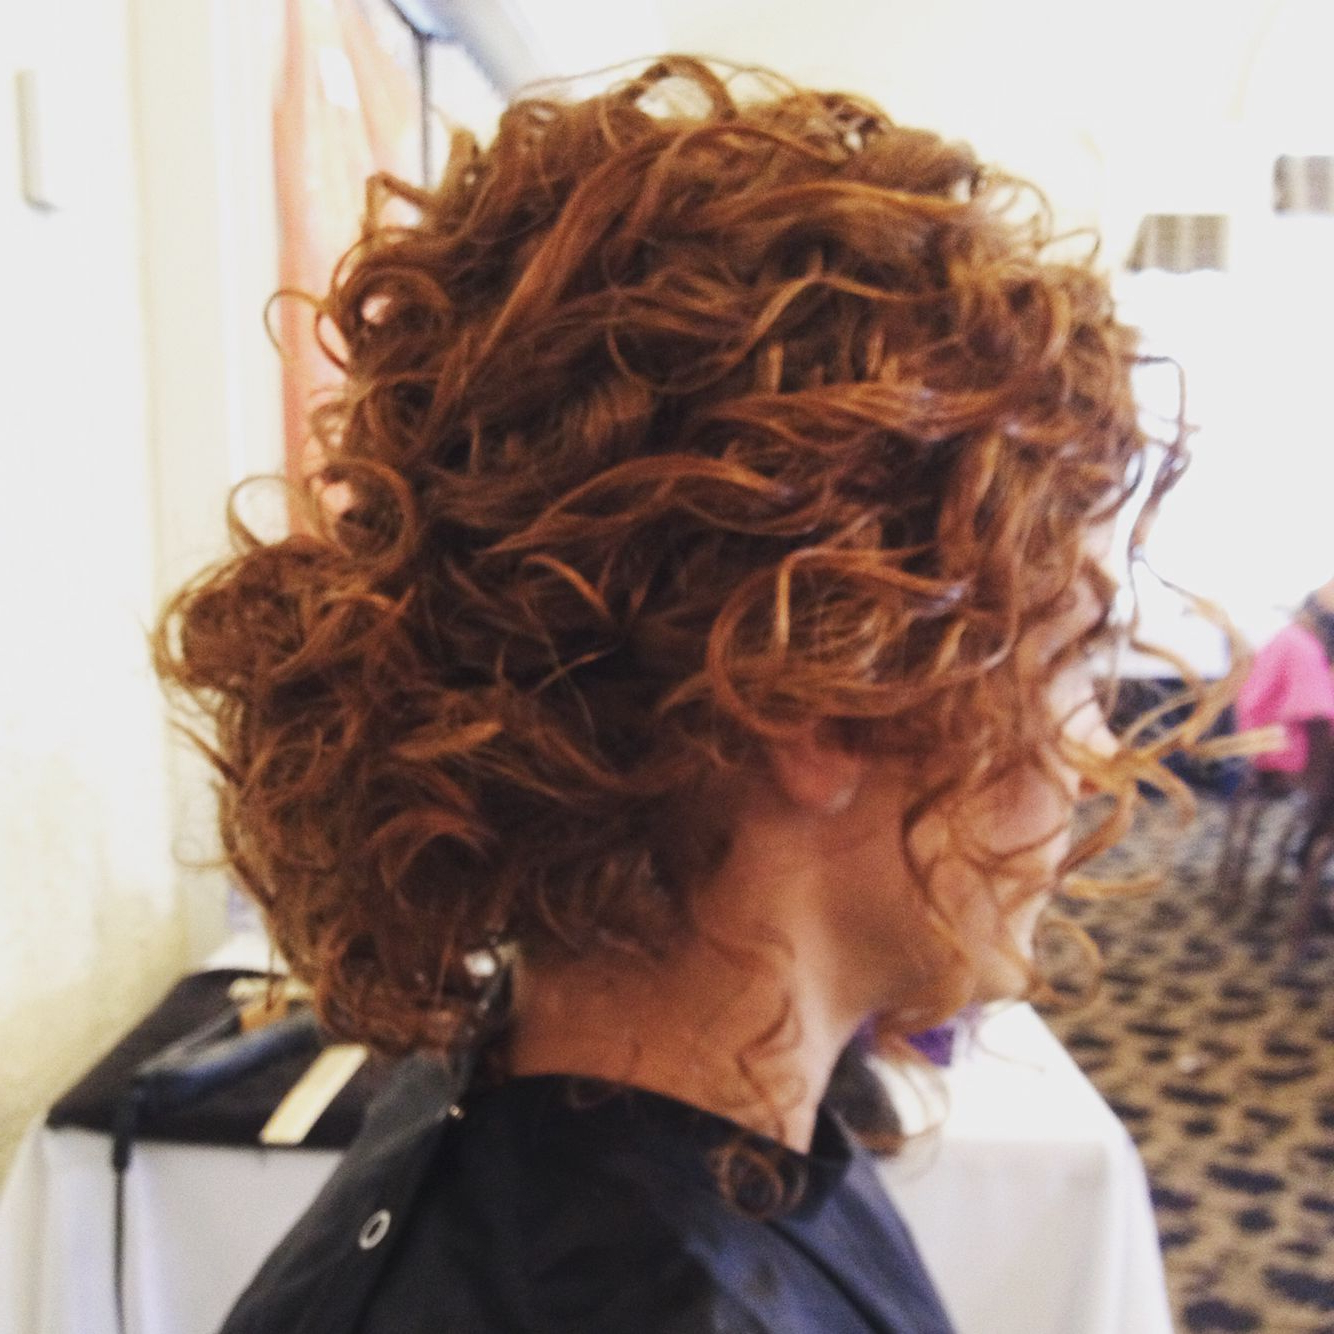 Naturally Curly Hair Low Bun Updo | Hair In 2018 | Pinterest | Curly intended for Short Messy Curly Hairstyles